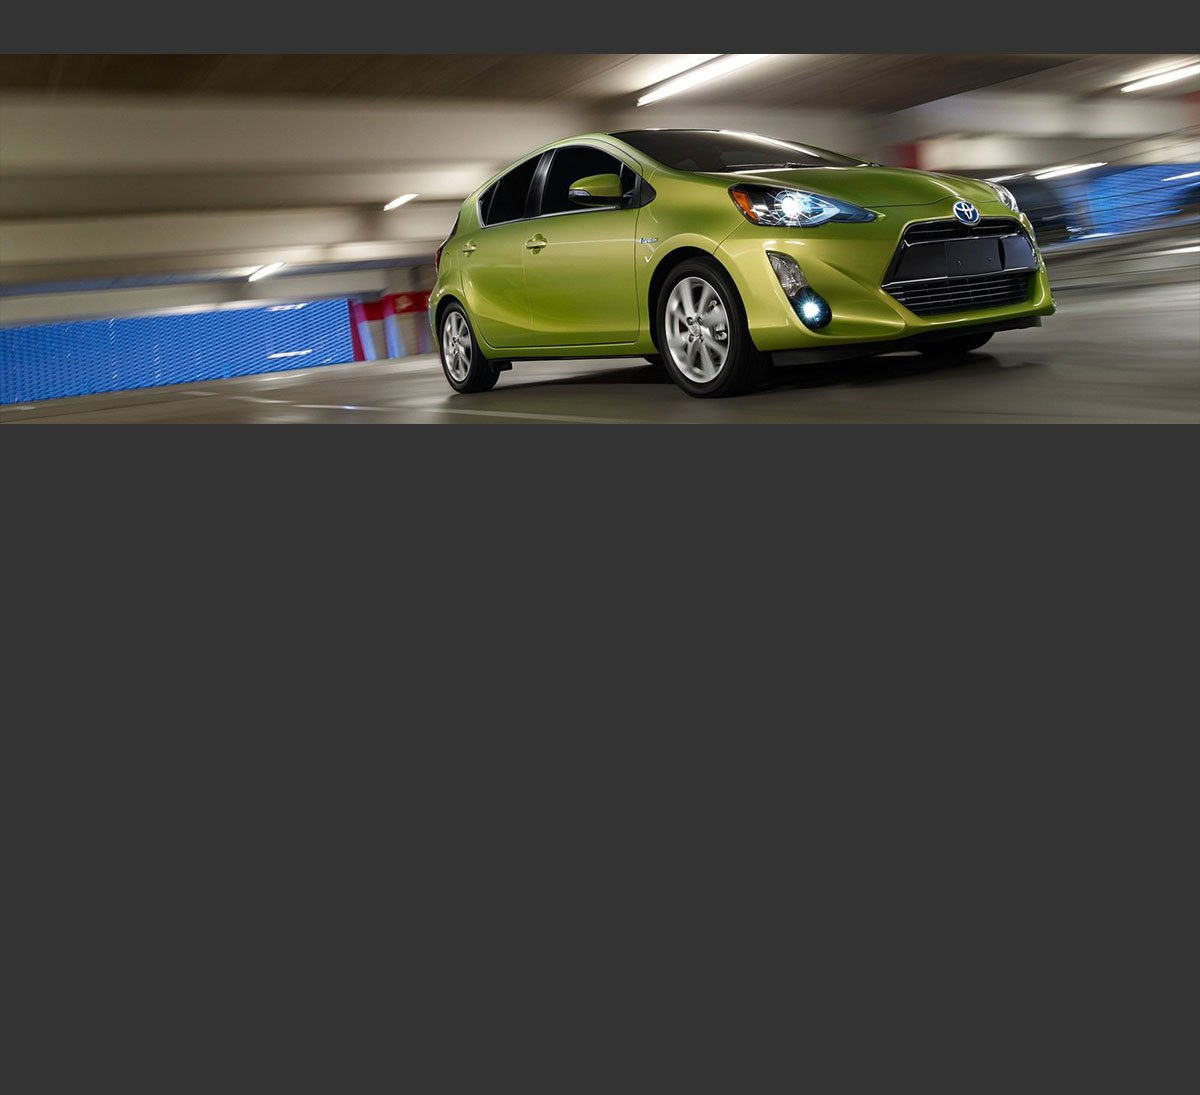 Used Car Dealerships In Plano Tx